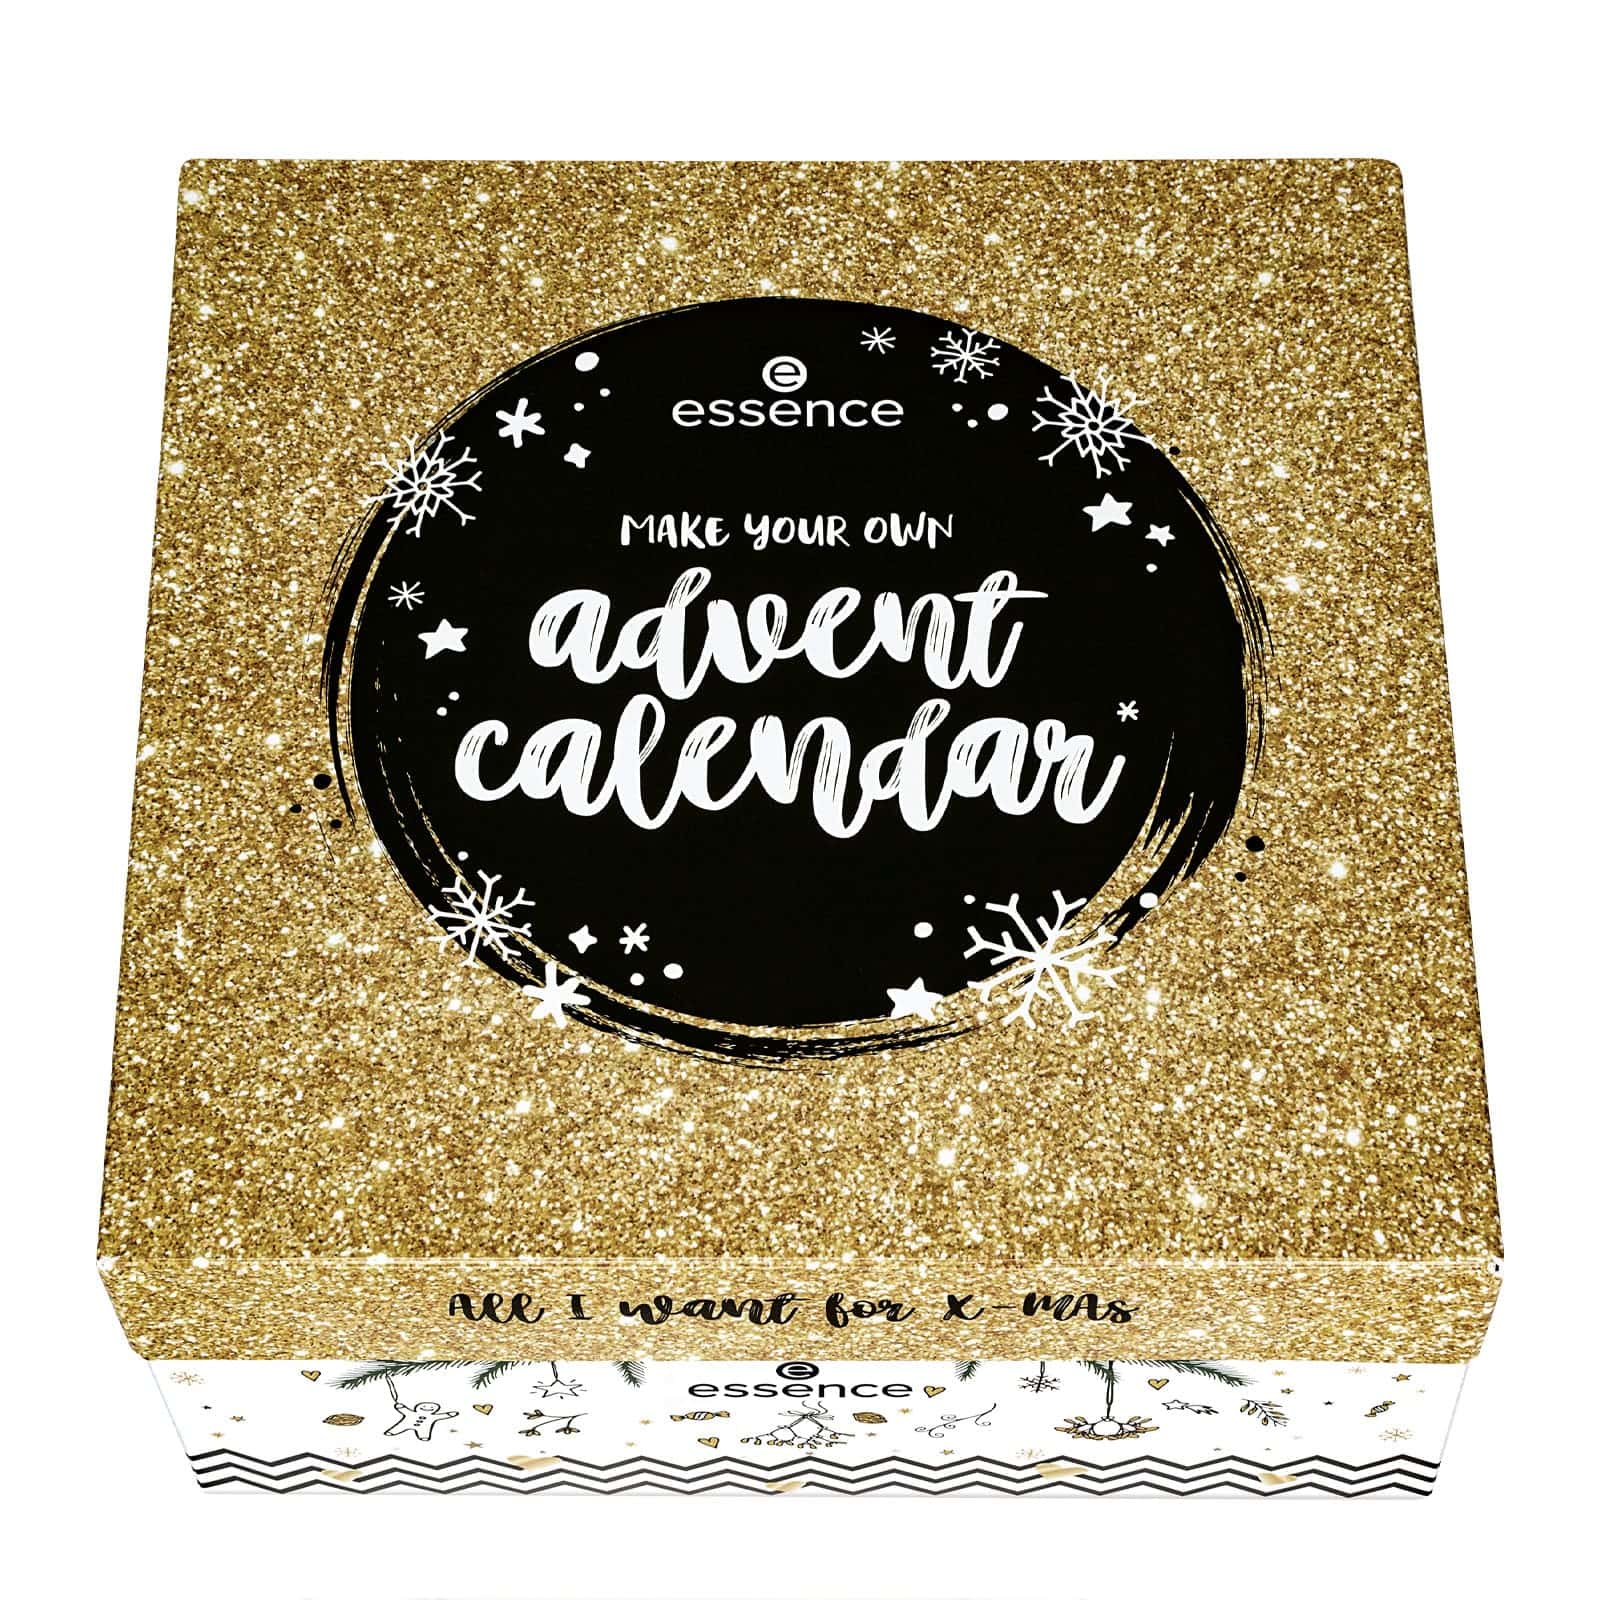 Essence Weihnachtskalender 2019.Essence Make Your Own Advent Calendar 2019 Contents Reveal